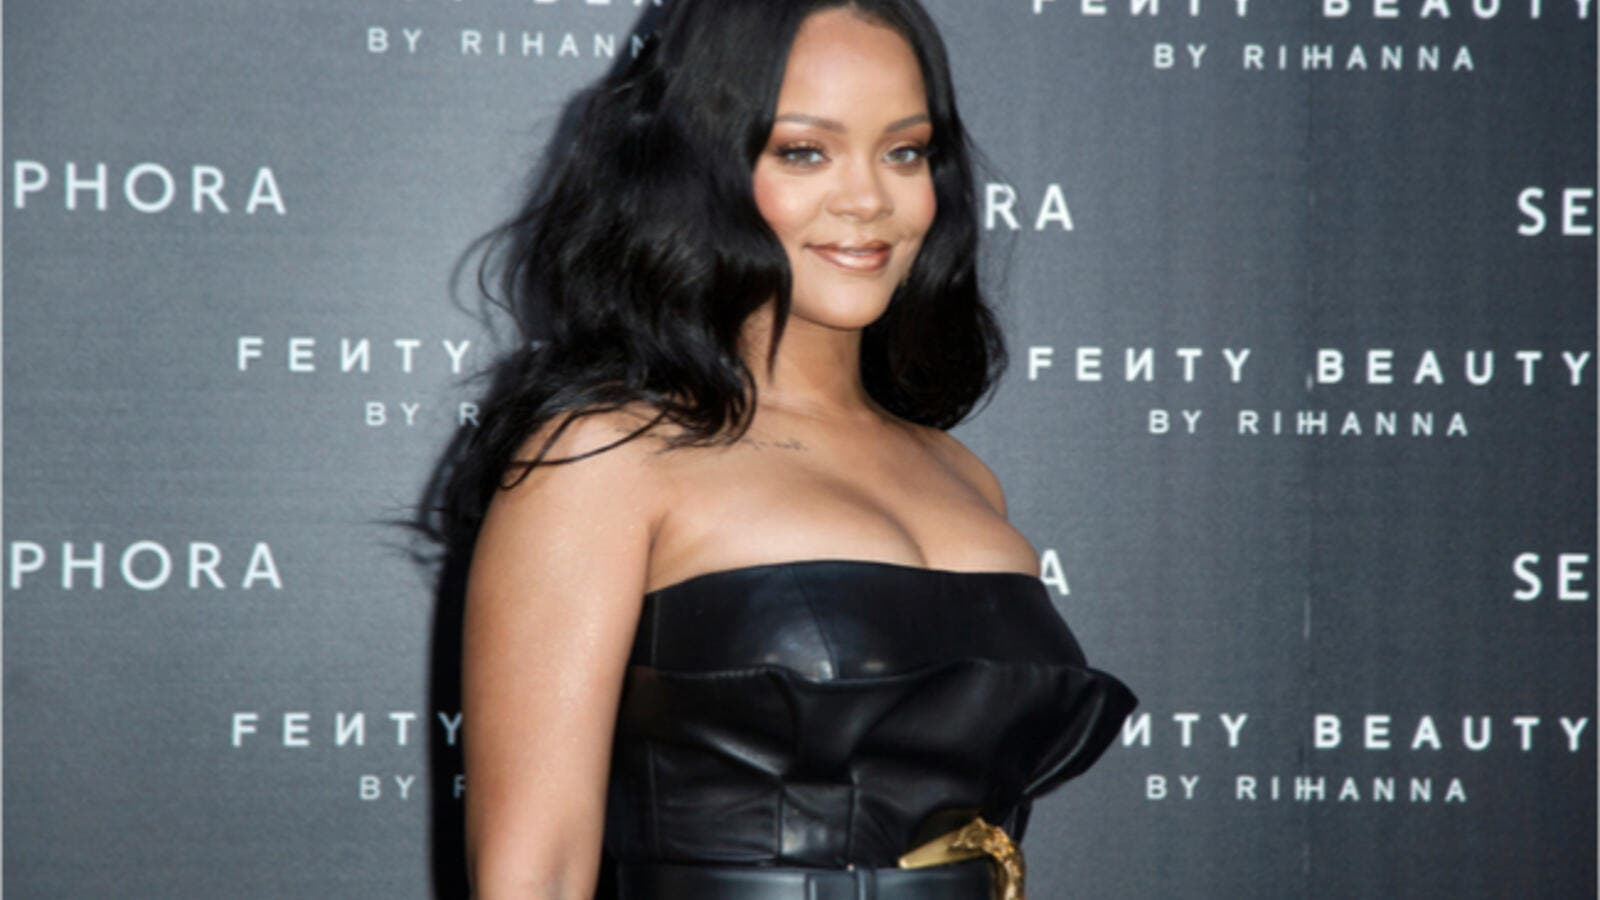 Rihanna's intruder has been charged with felony stalking (Source: Andrea Raffin / Shutterstock)